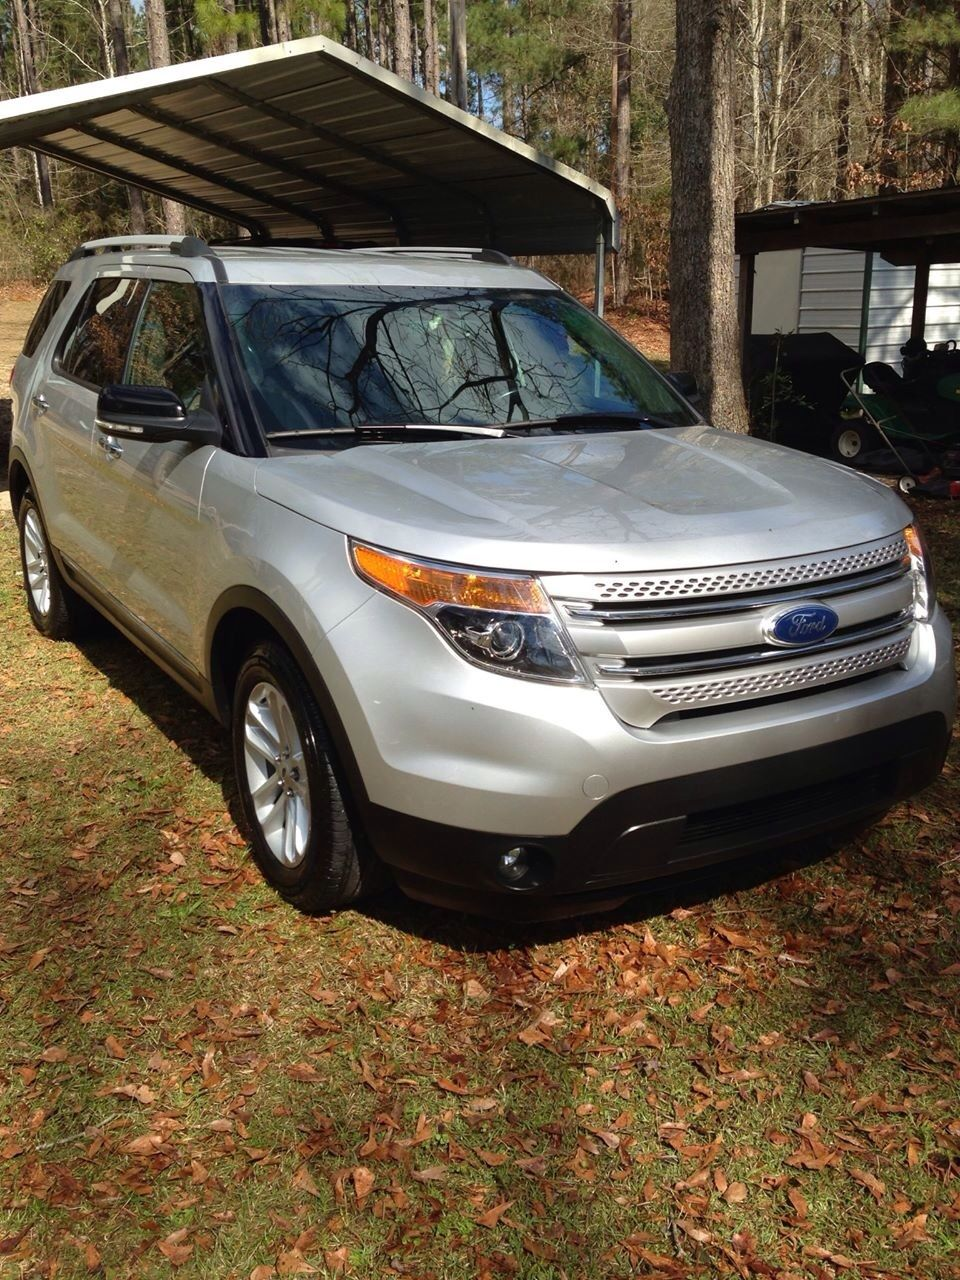 2012 ford escape windshield replacement cost. Black Bedroom Furniture Sets. Home Design Ideas